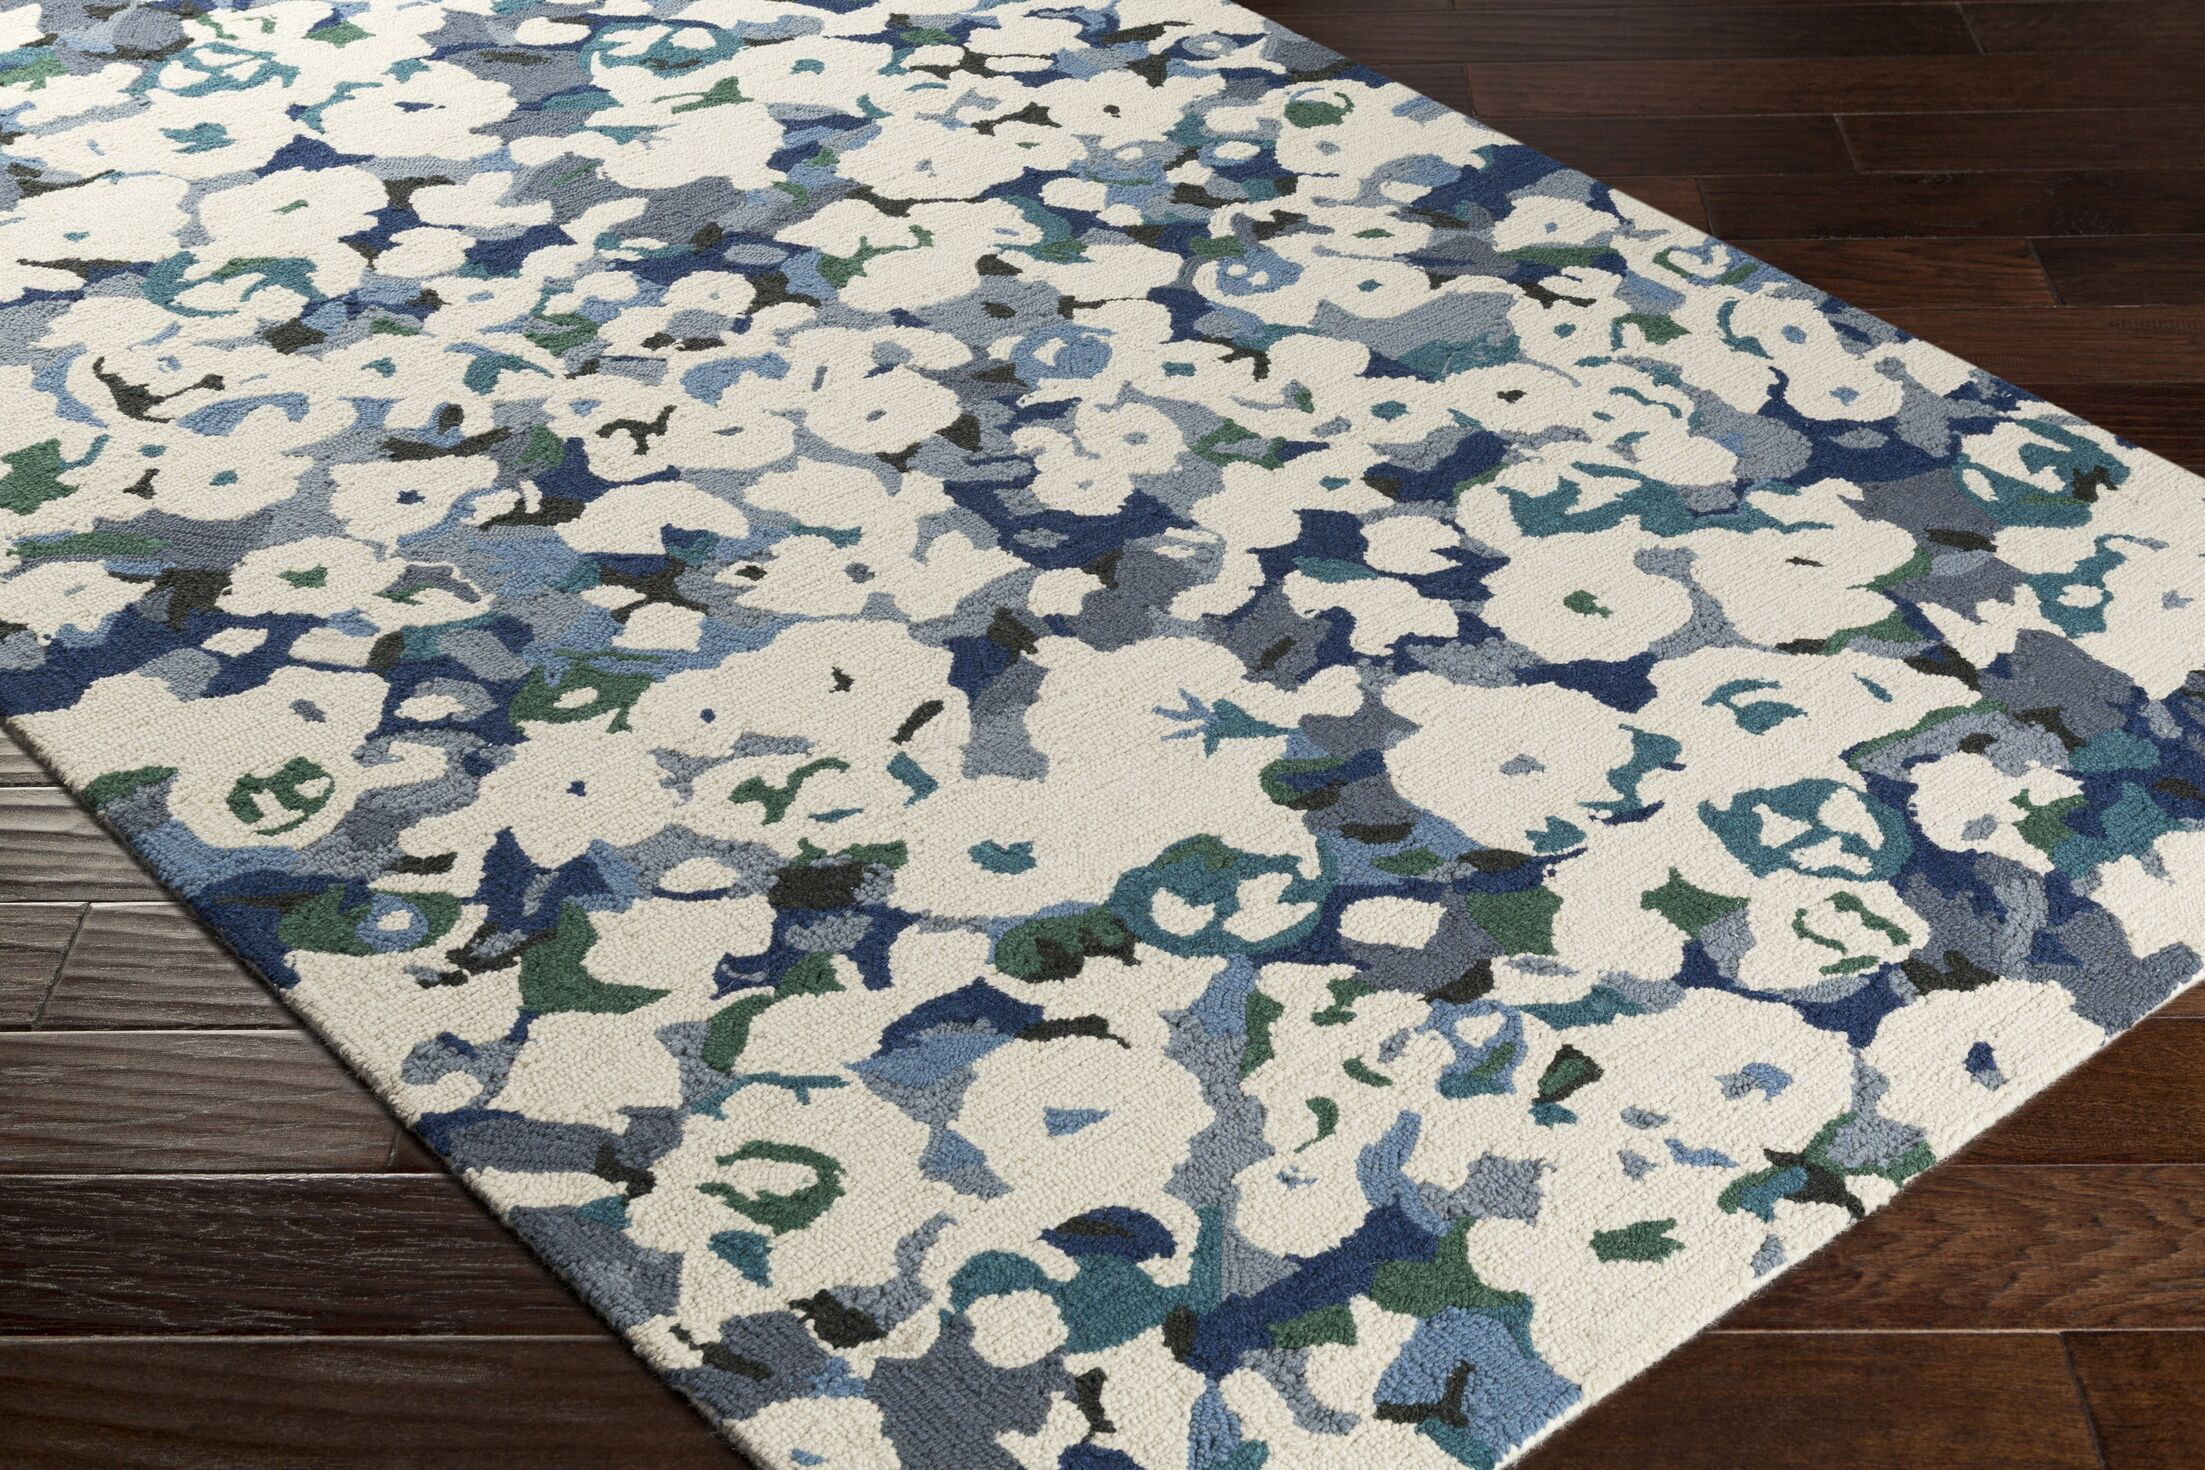 Amanda Hand-Tufted Beige/Gray Area Rug Rug Size: Rectangle 8' x 10'